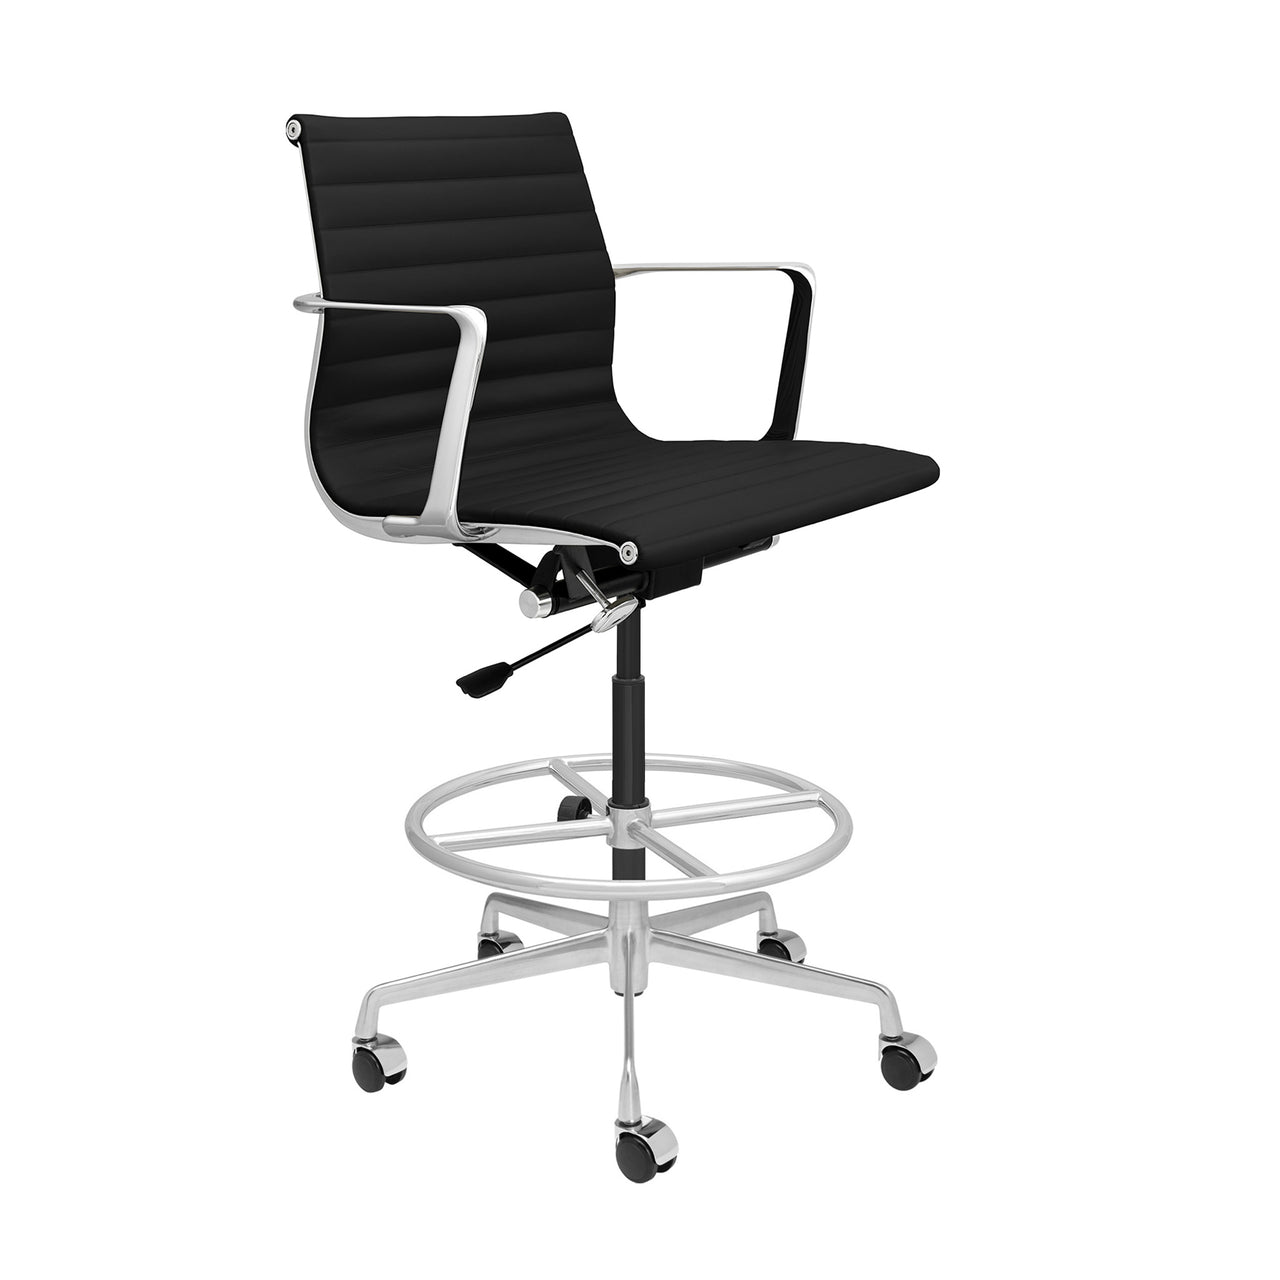 SOHO Pro Ribbed Drafting Chair (Black Italian Leather)